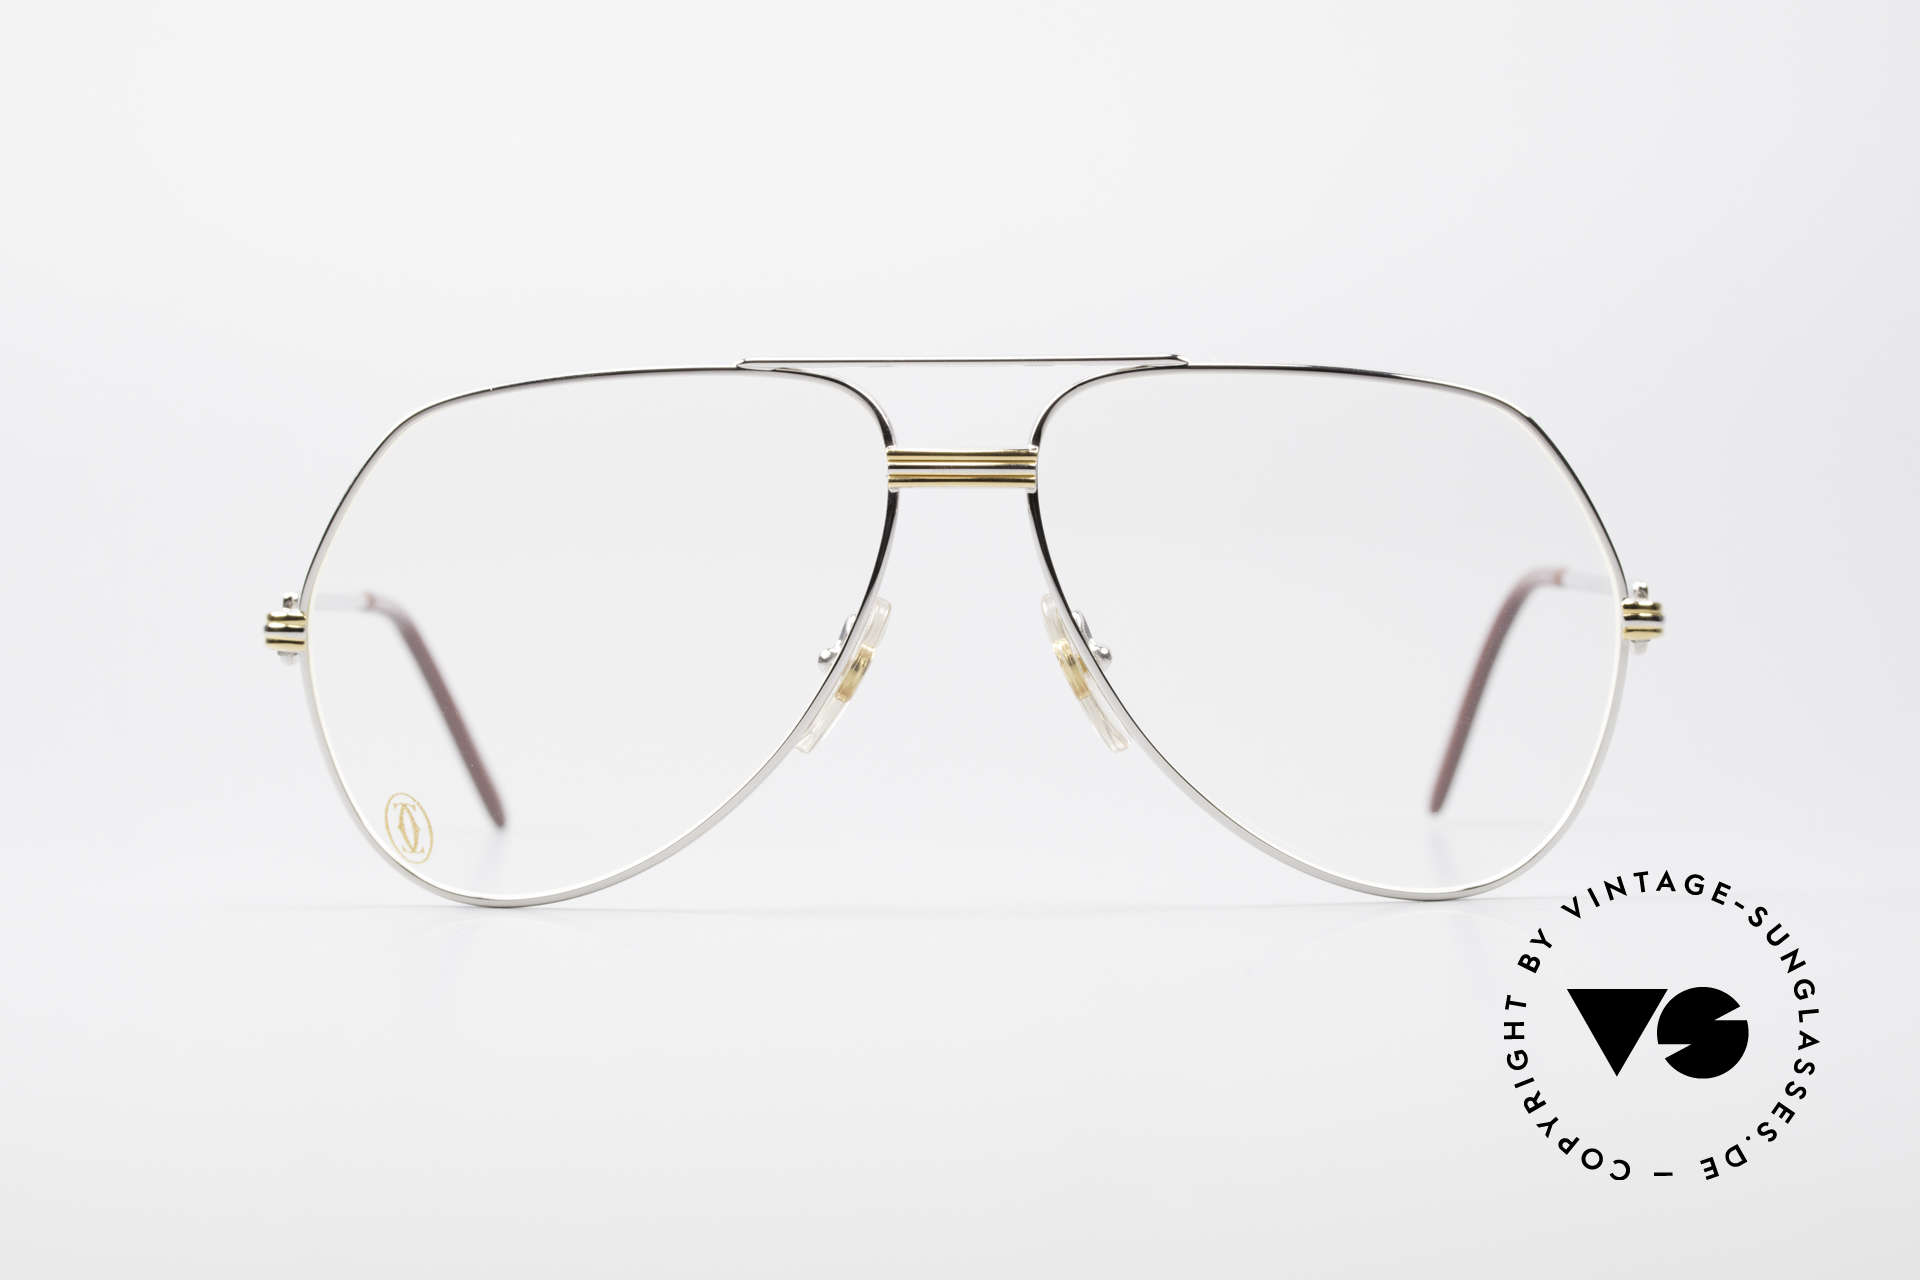 """Cartier Vendome LC - L Platinum Finish Frame Luxury, mod. """"Vendome"""" was launched in 1983 & made till 1997, Made for Men"""